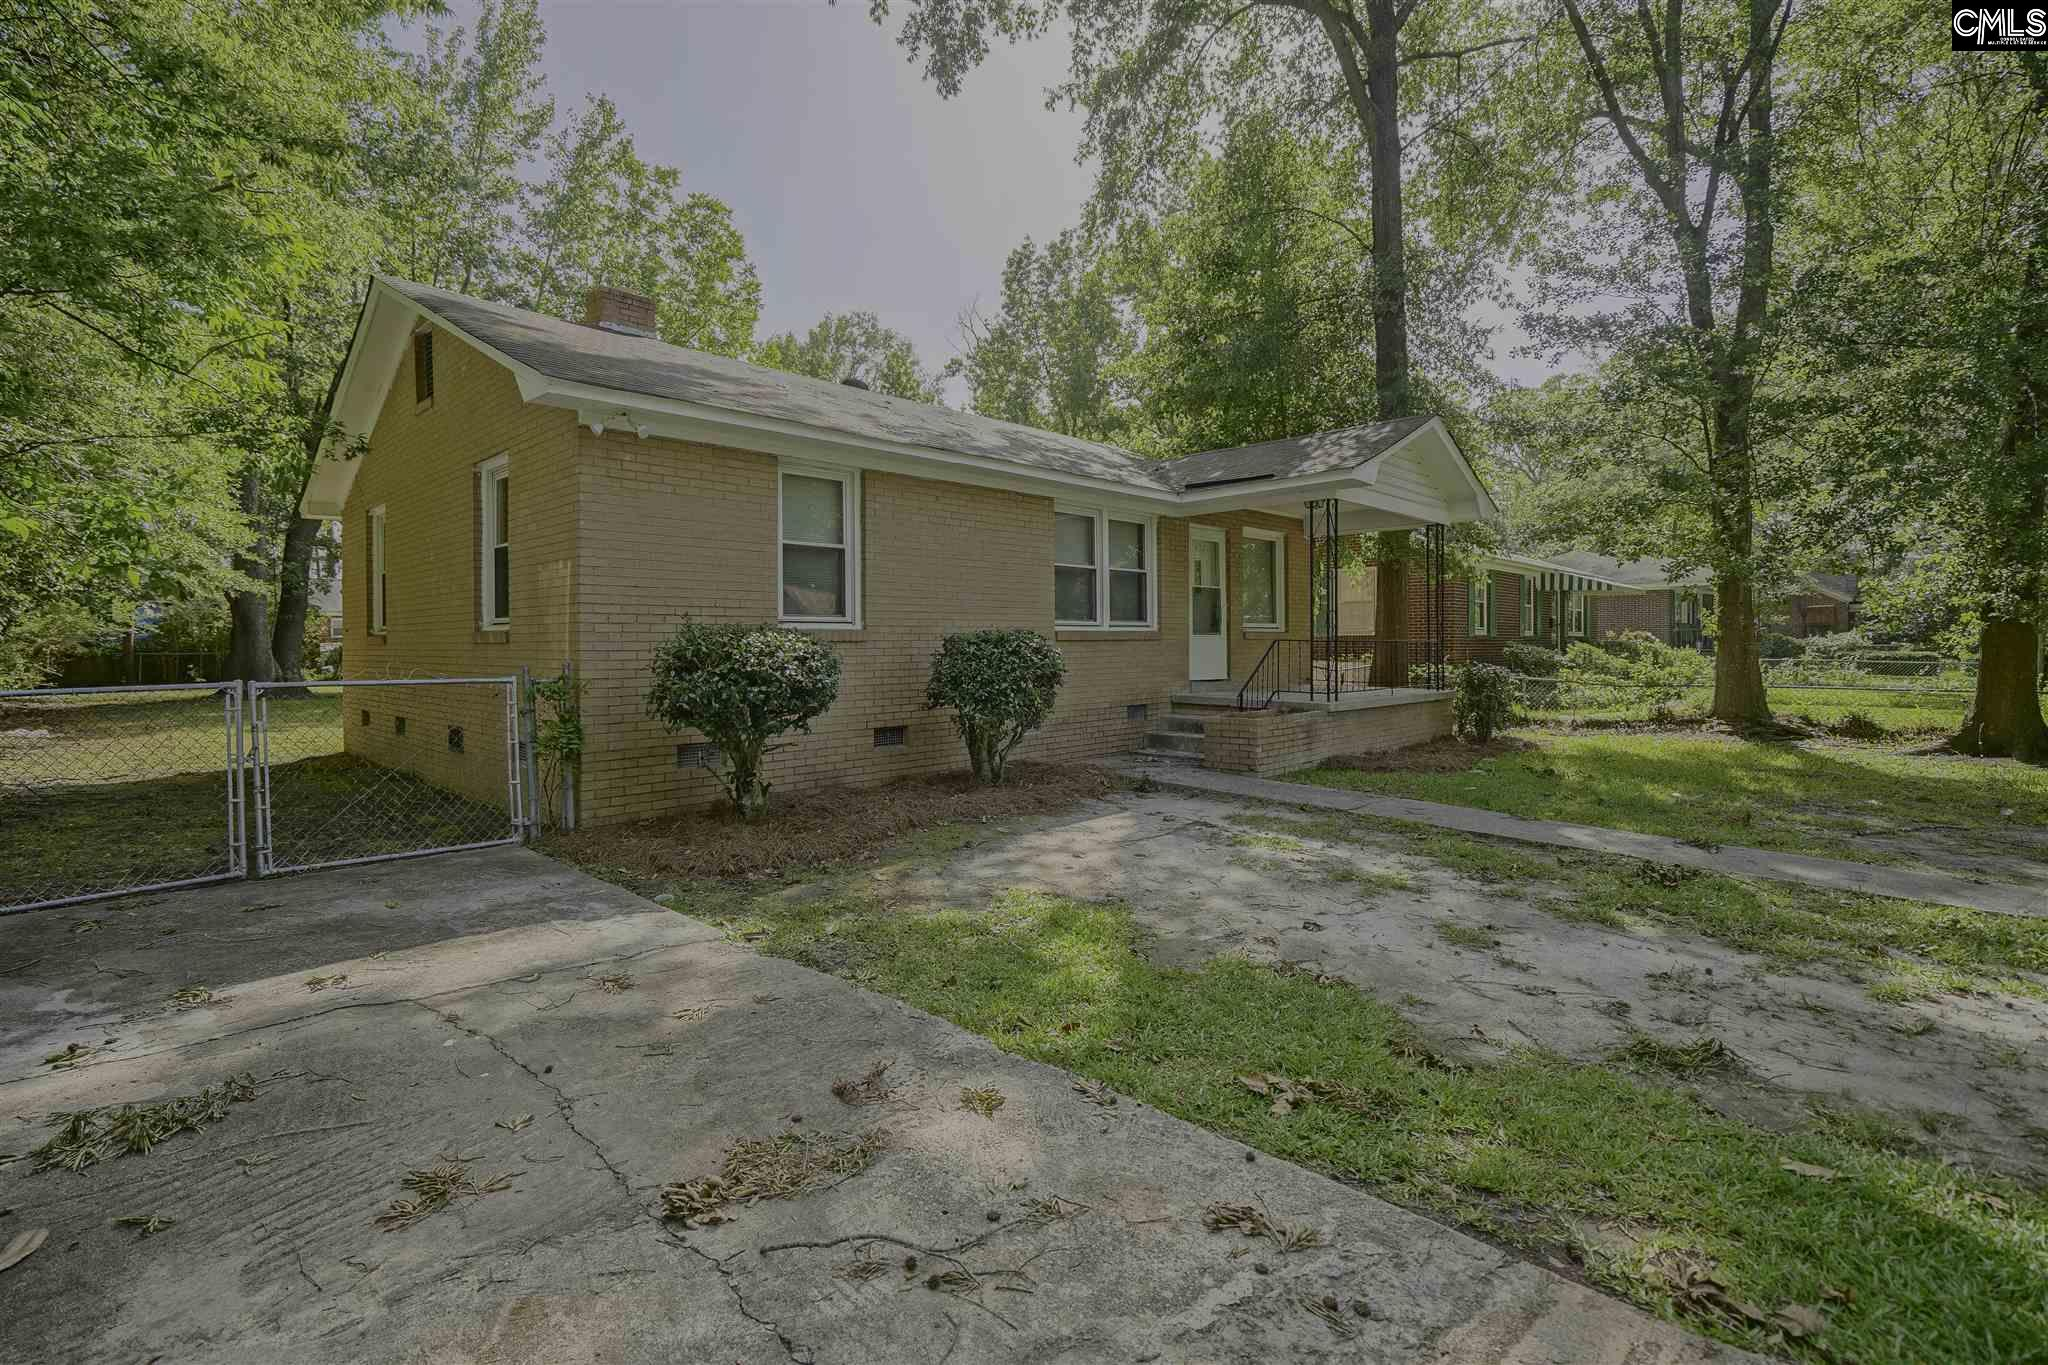 2830 Chestnut Columbia, SC 29204